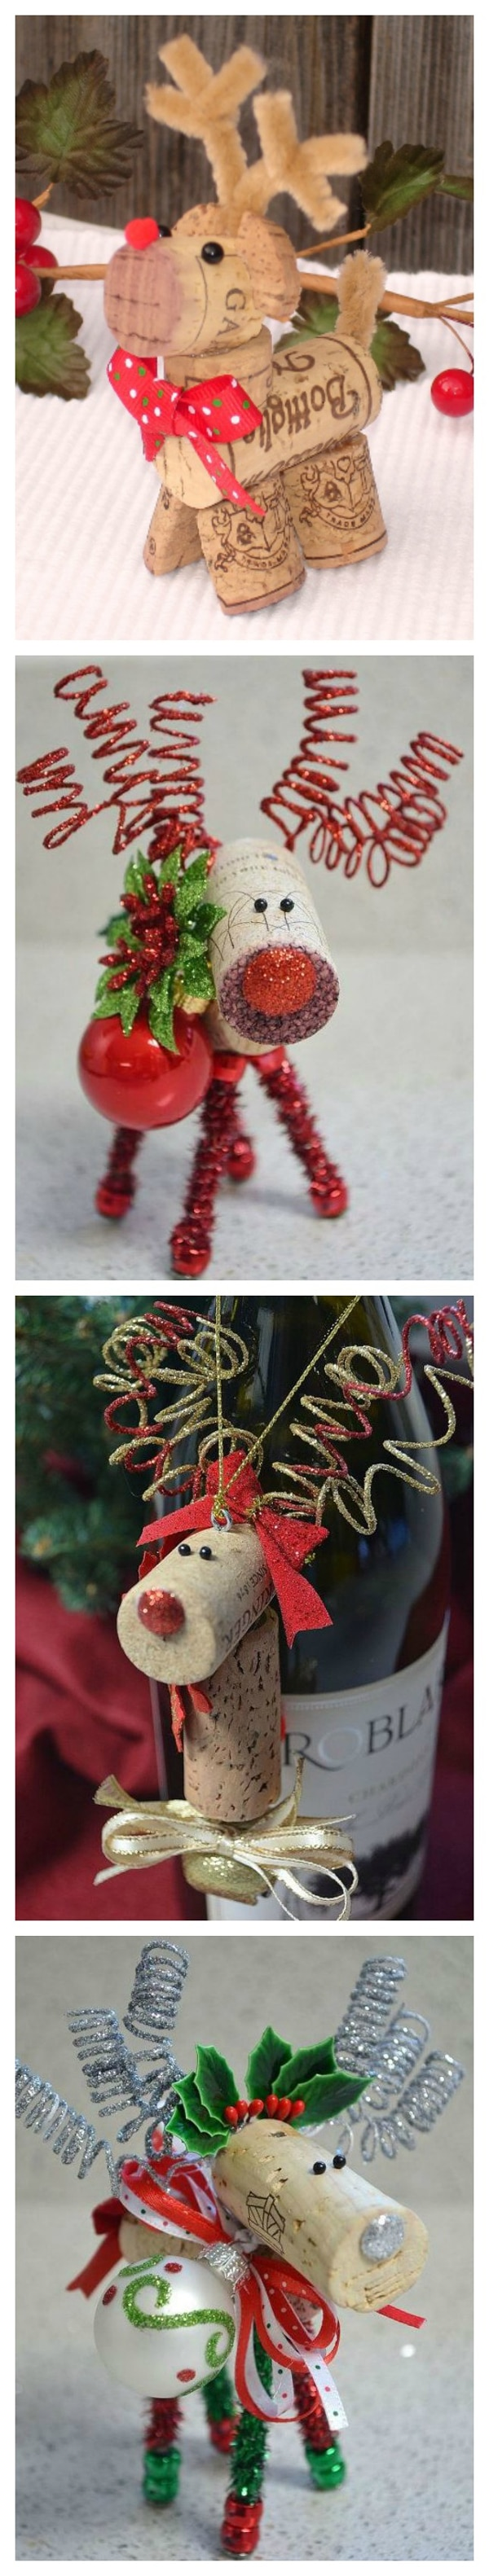 Cork Reindeer Craft